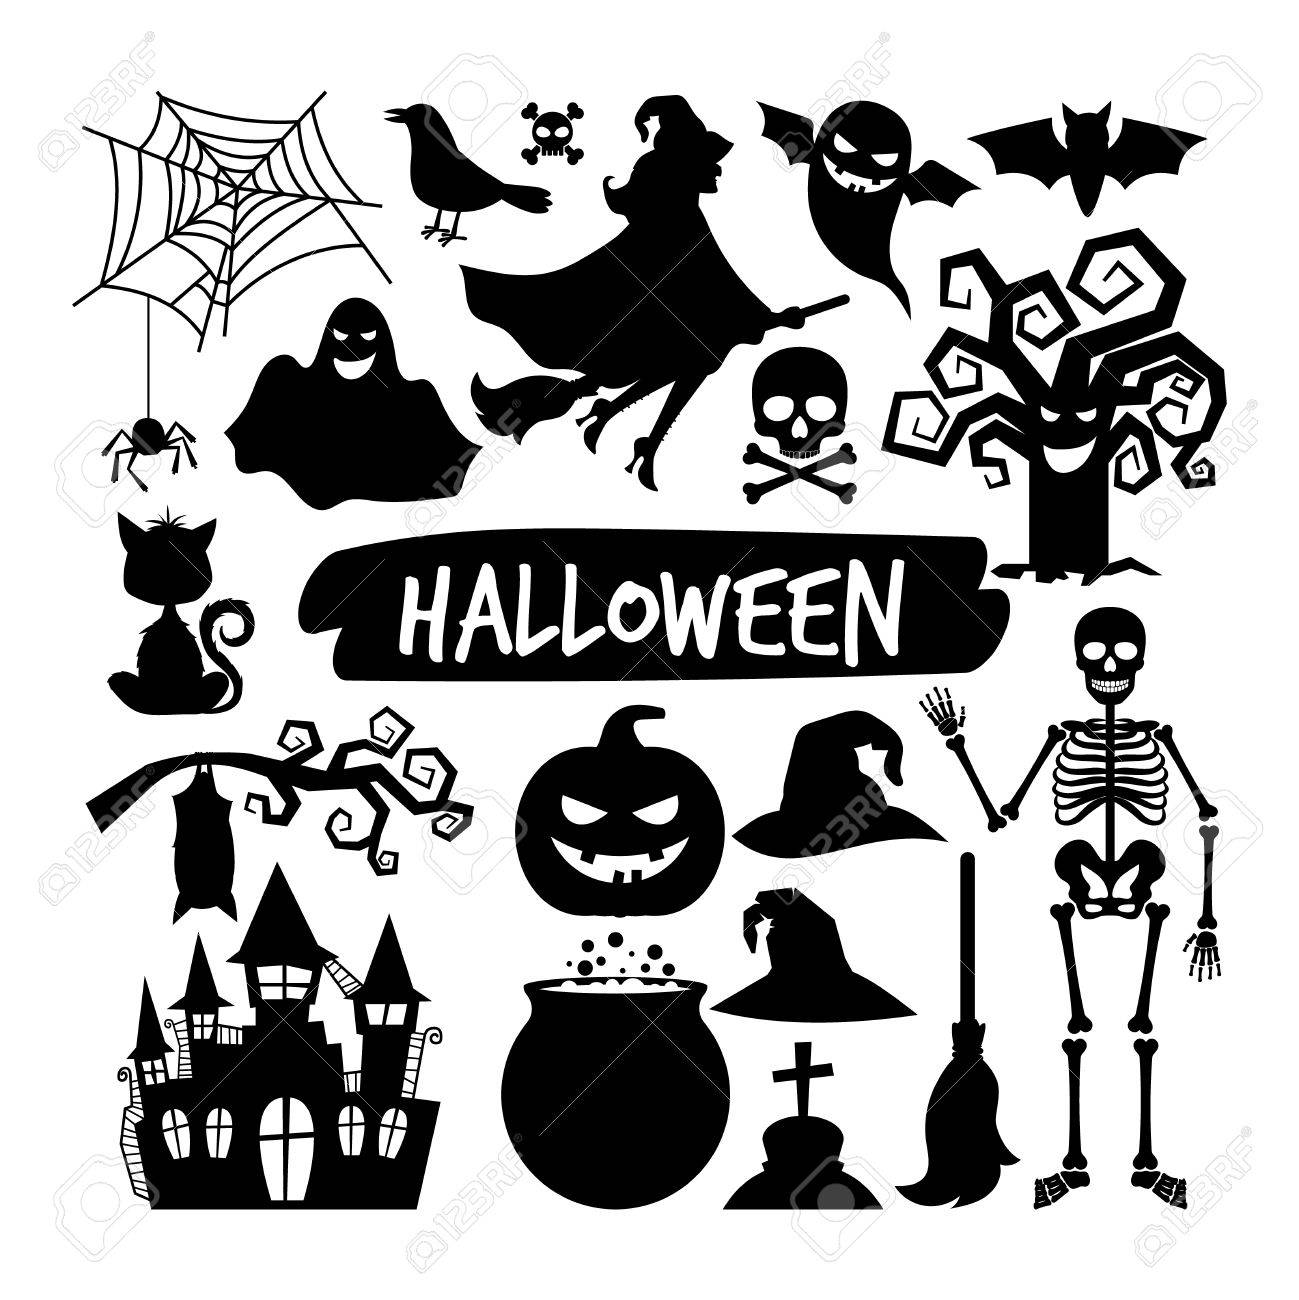 Halloween Vector Black And White.Halloween Black Silhouettes Happy Halloween Vector Night Icons